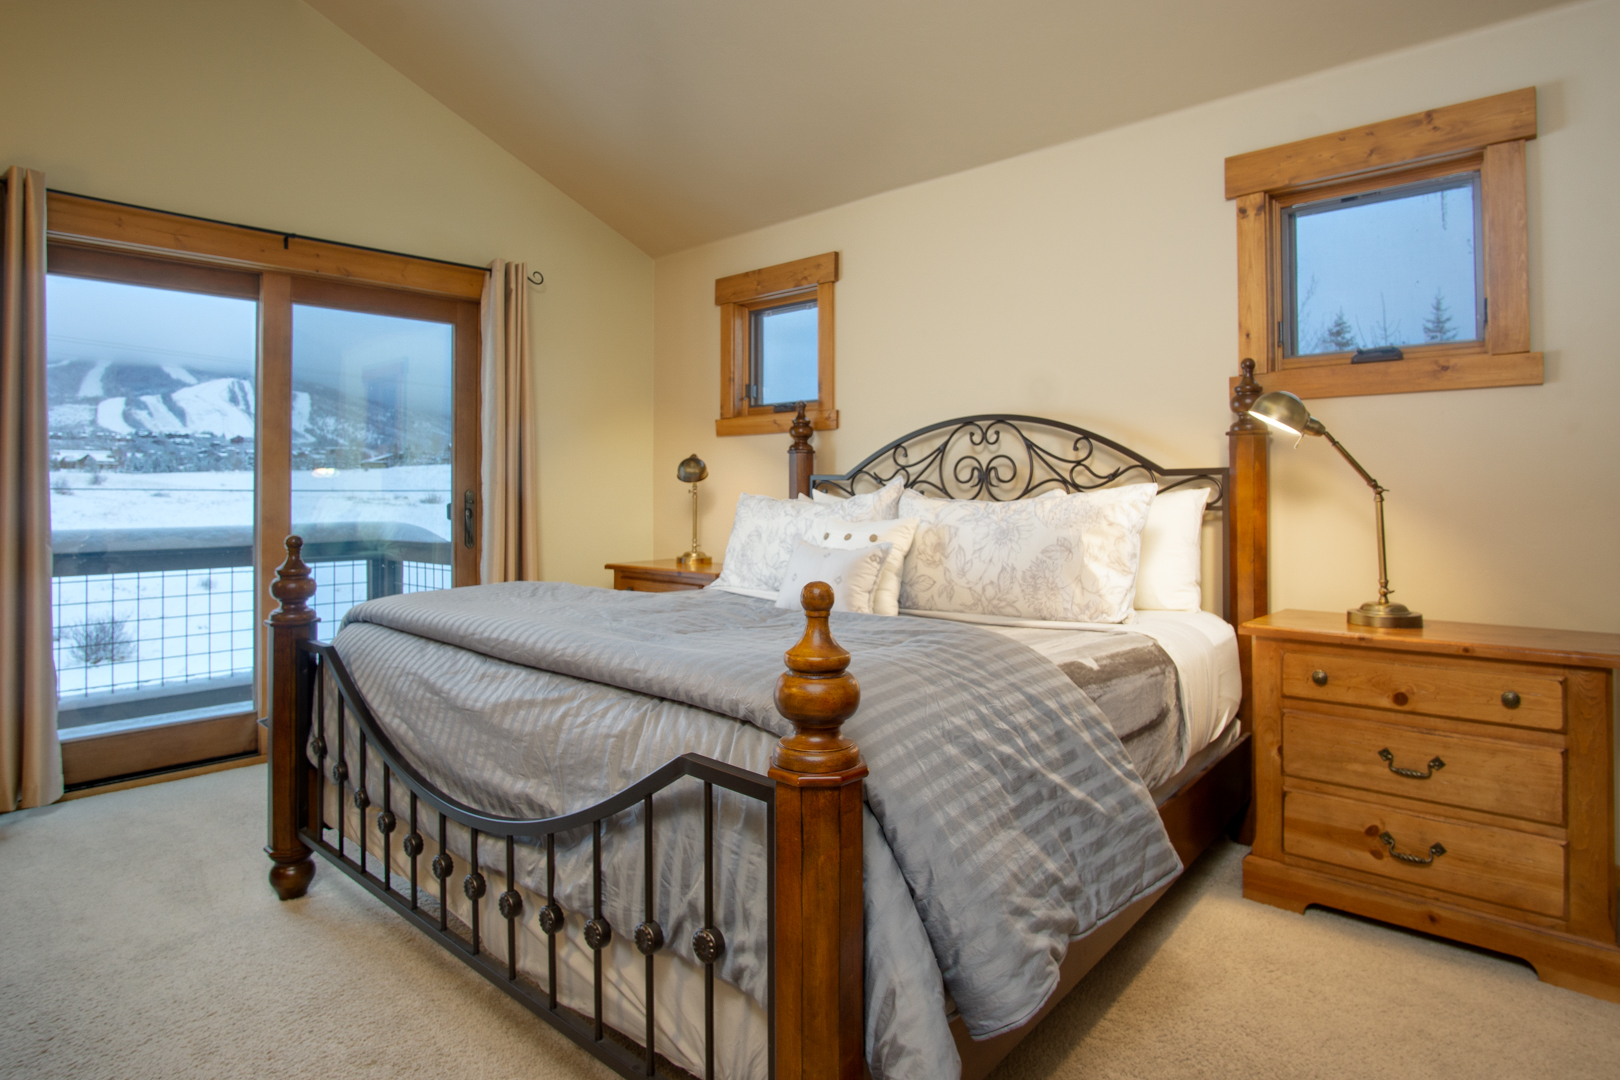 The Master Suite with views of the backyard open space and the ski area.